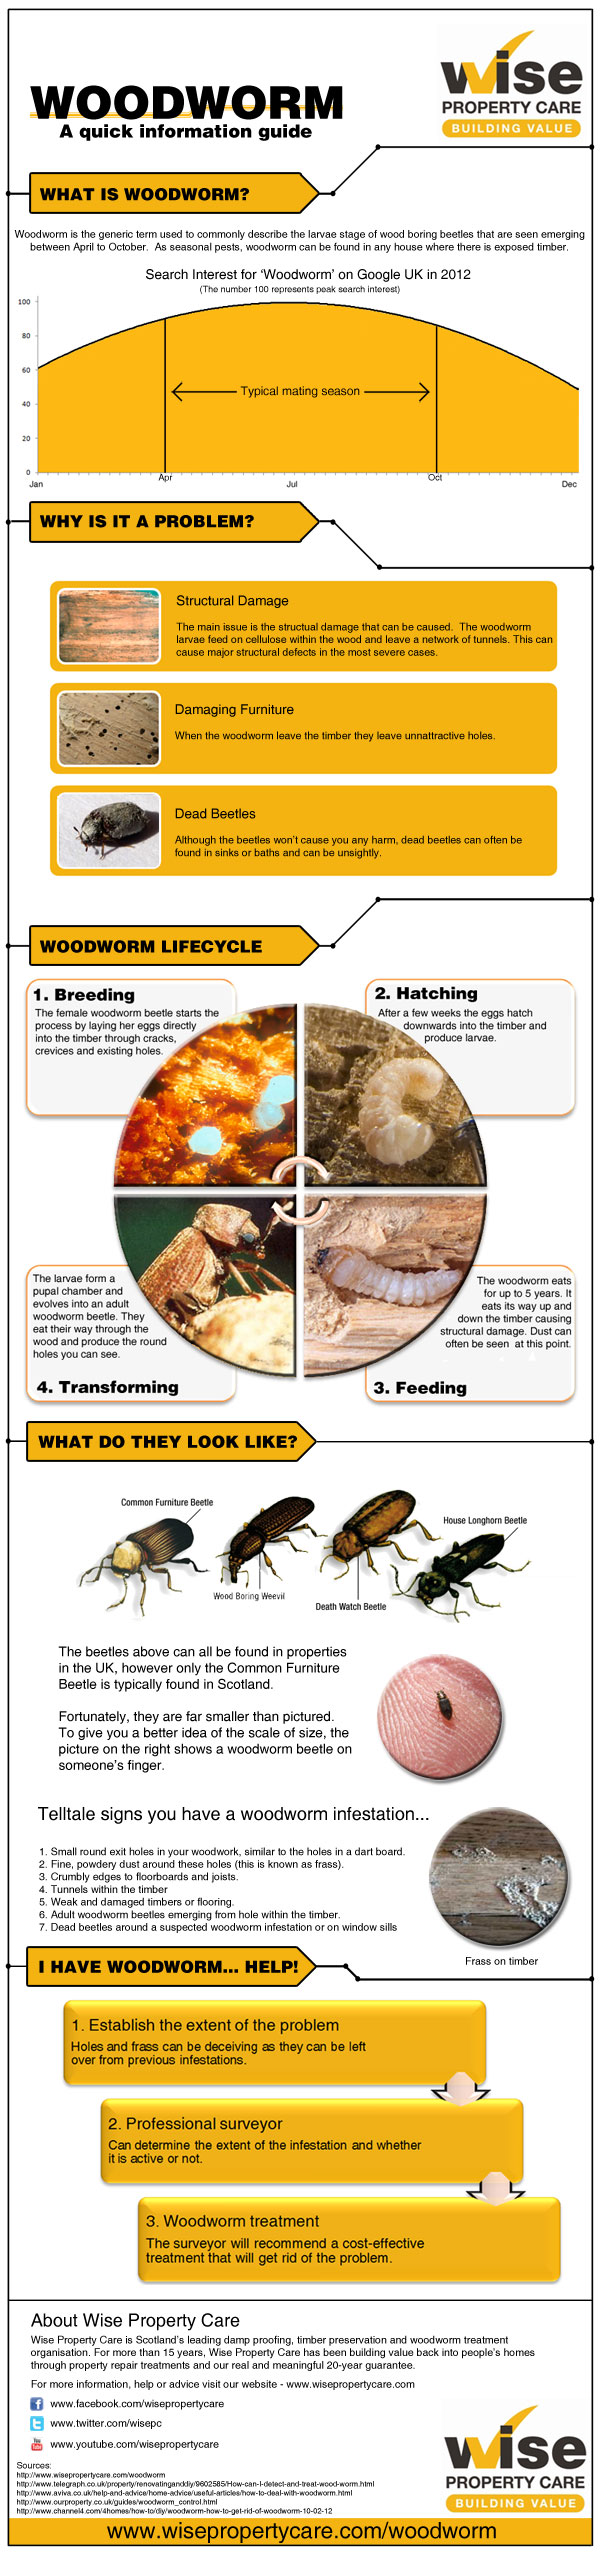 Woodworm Cycle